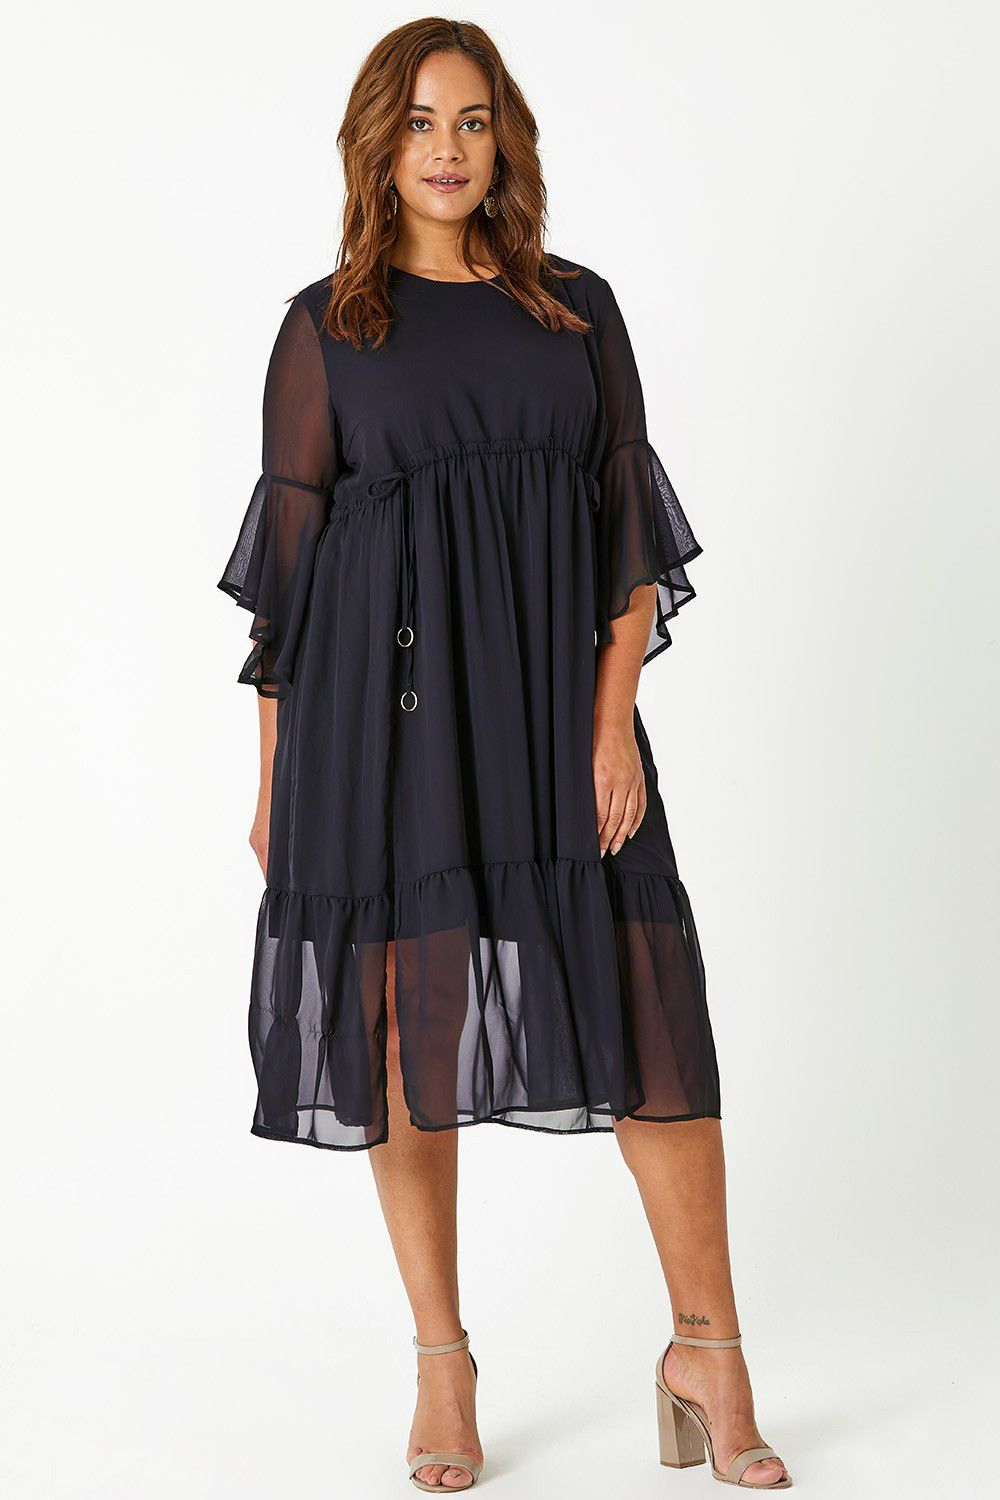 Plus Size Birthday Dresses